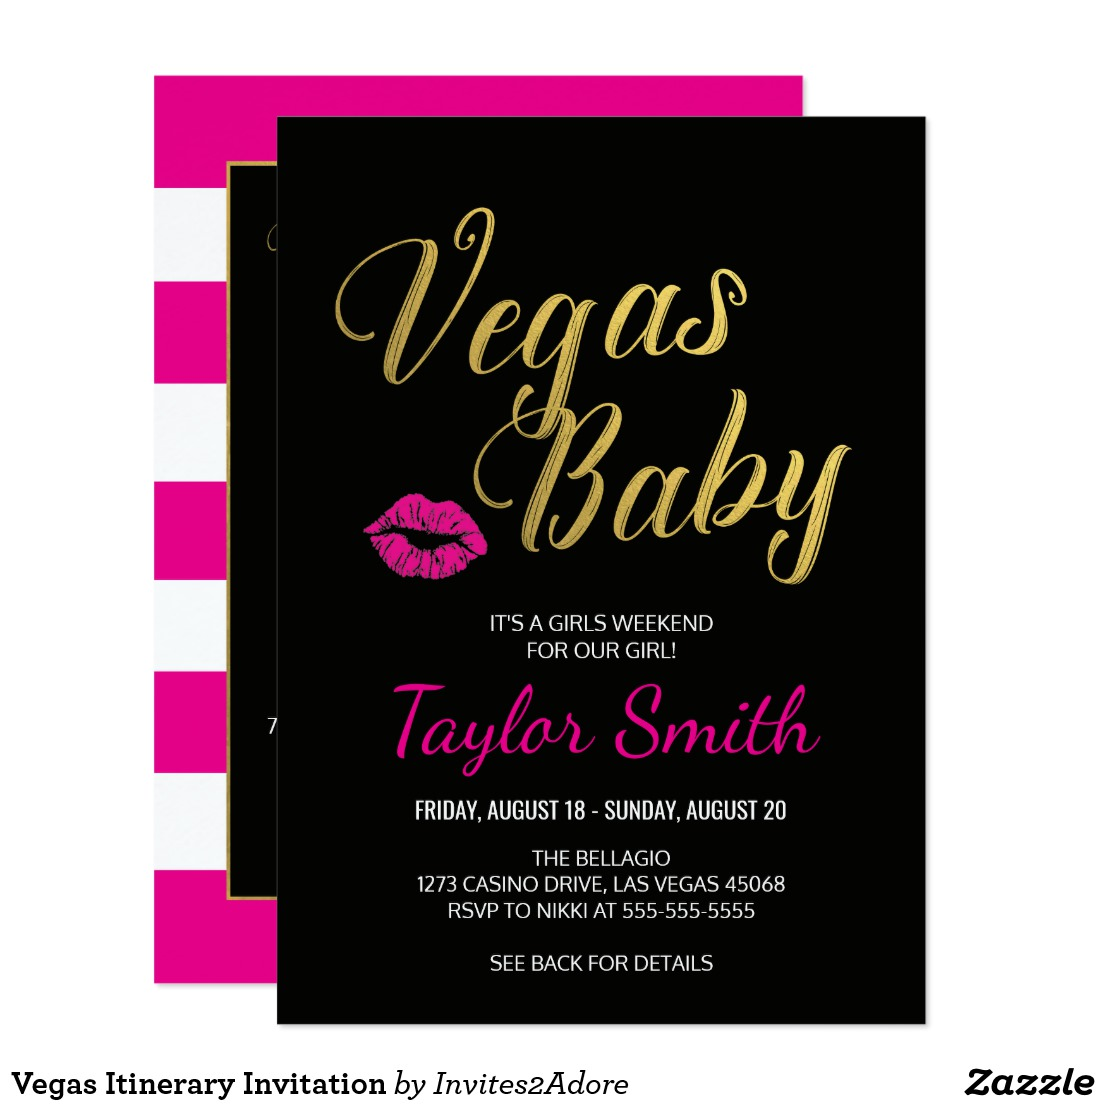 Las Vegas Bachelorette Party Invitations